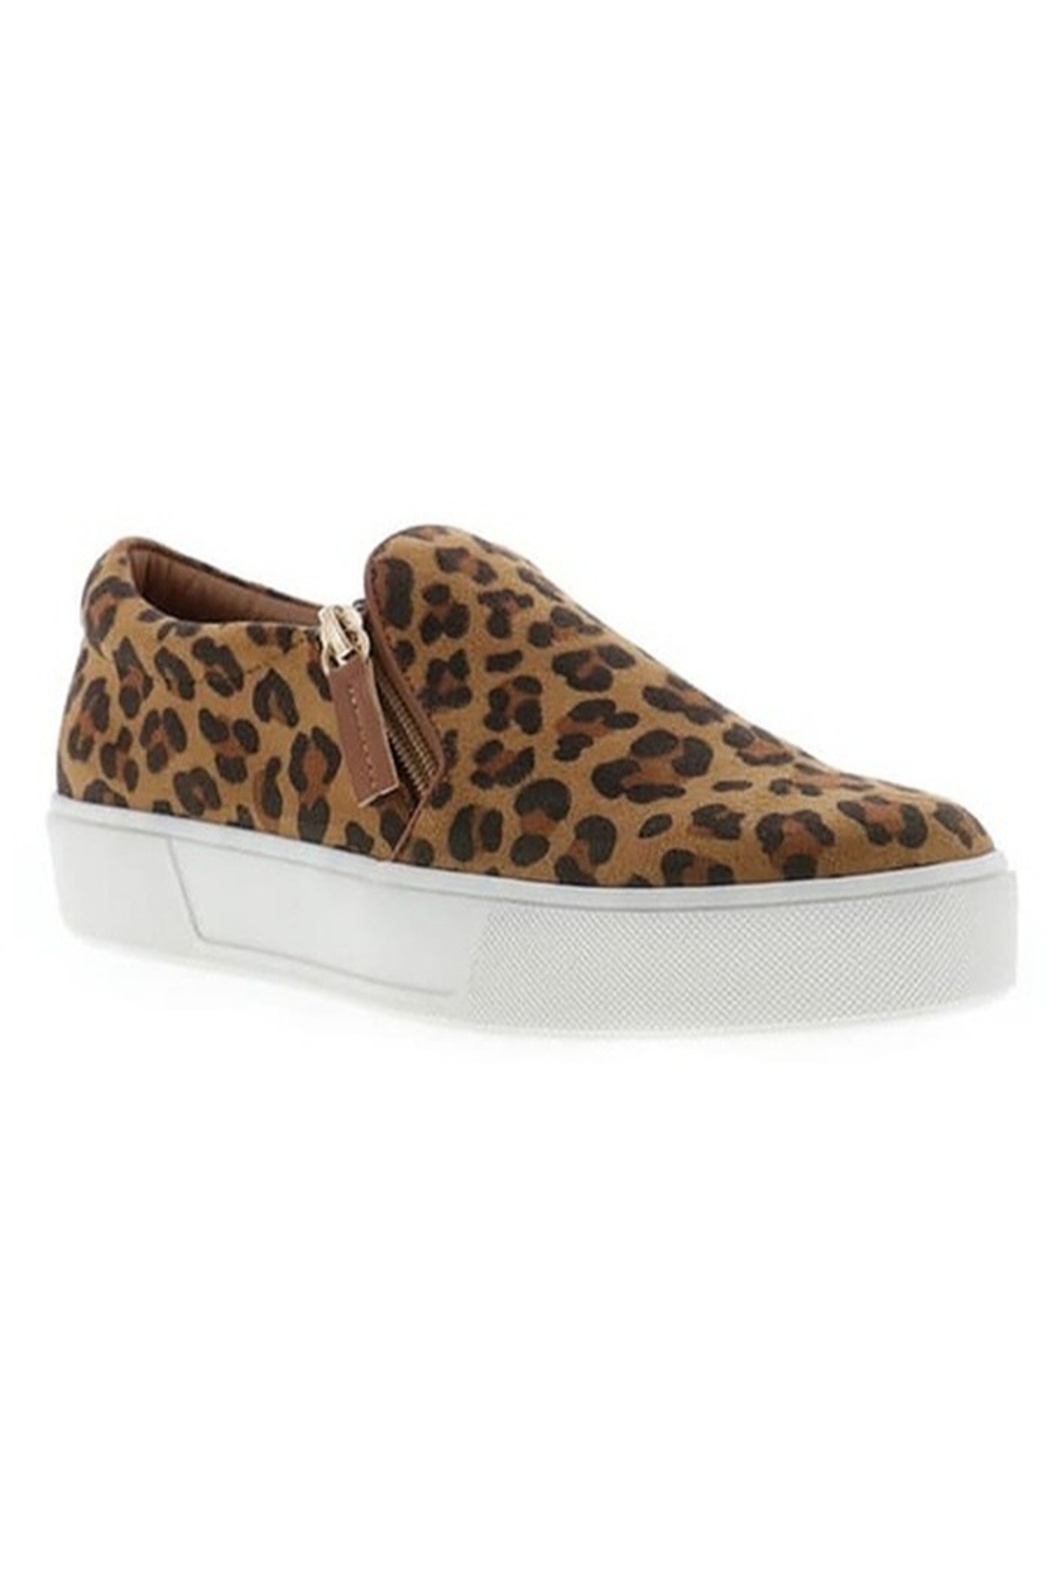 Volatile Hopper Leopard Sneaker - Front Cropped Image